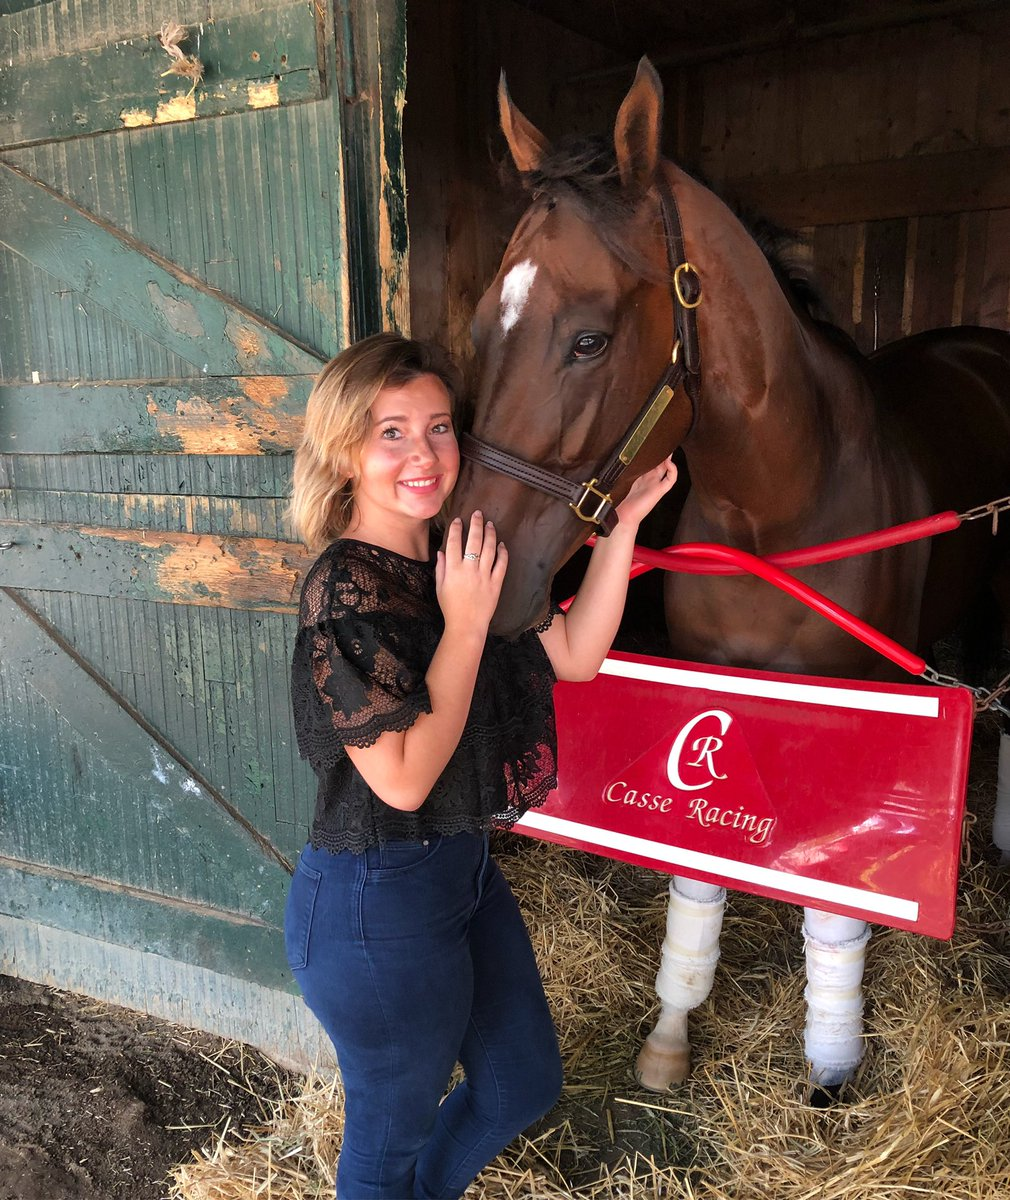 Here's a throwback of Wonder Gadot and I for #nationaldayofthehorse  I don't know what my life would be like without them.<br>http://pic.twitter.com/nA4fmo63FN